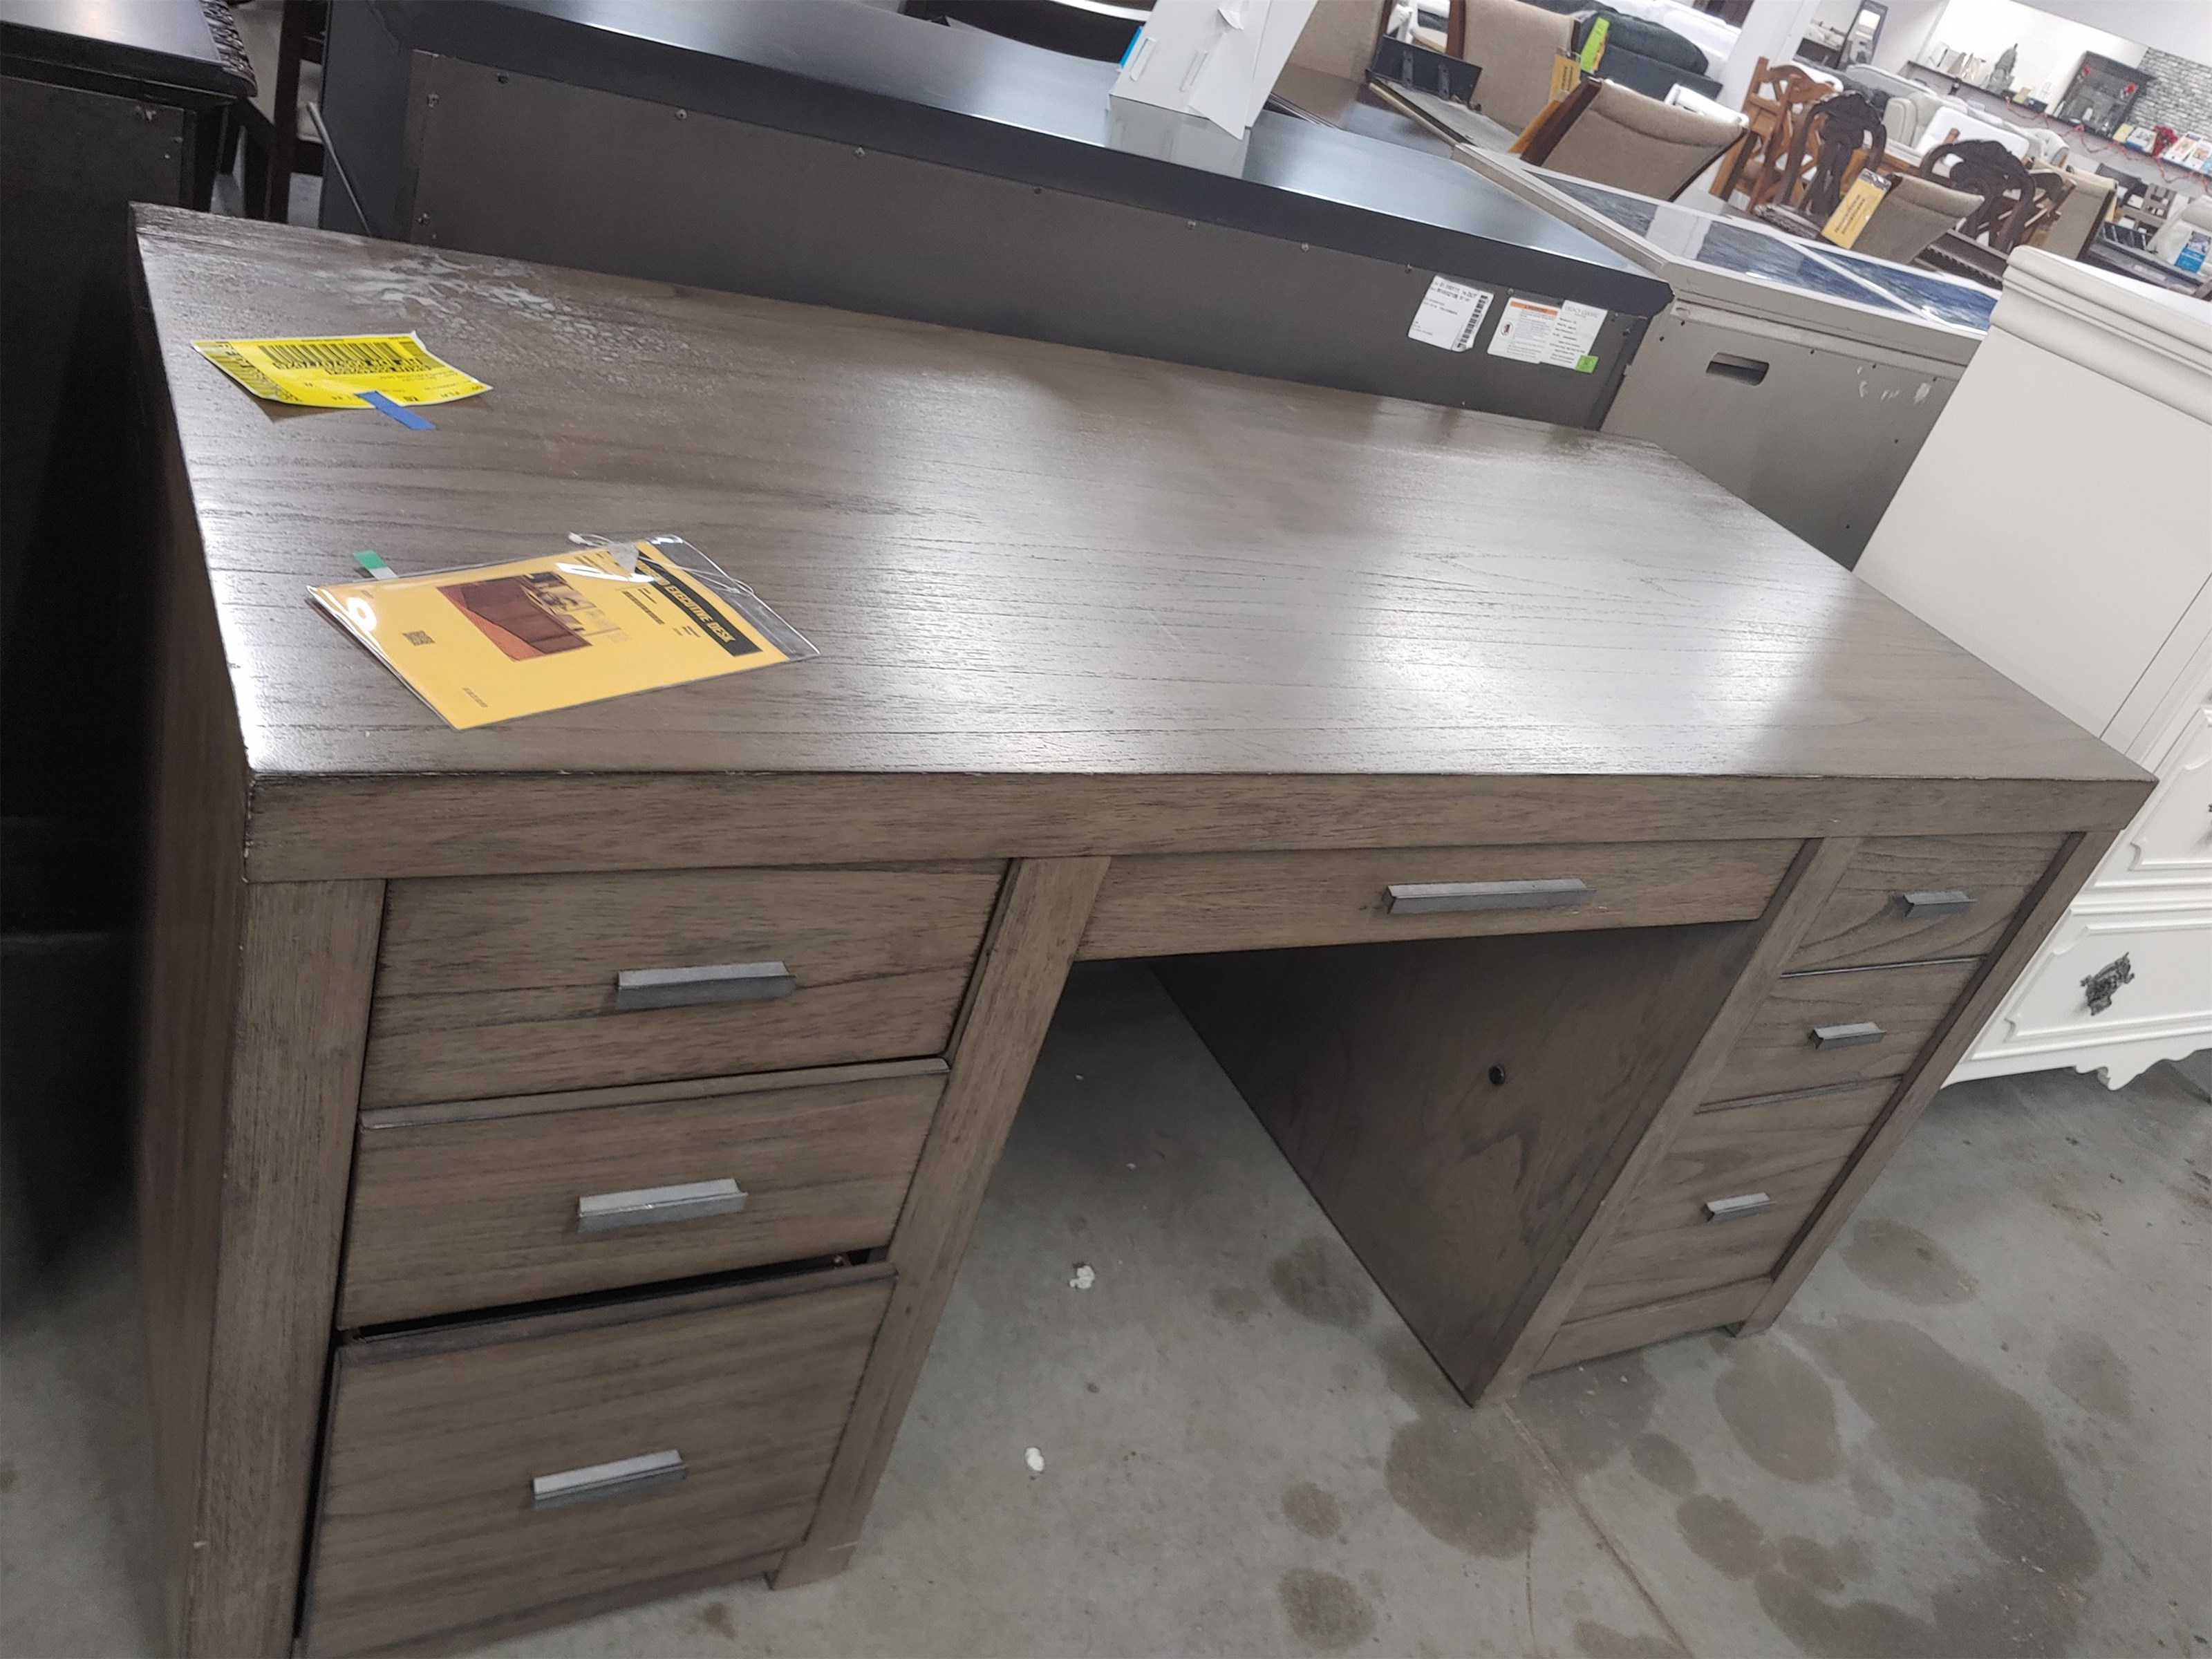 Last One Desk Last One! Desk! by Aspenhome at Morris Home